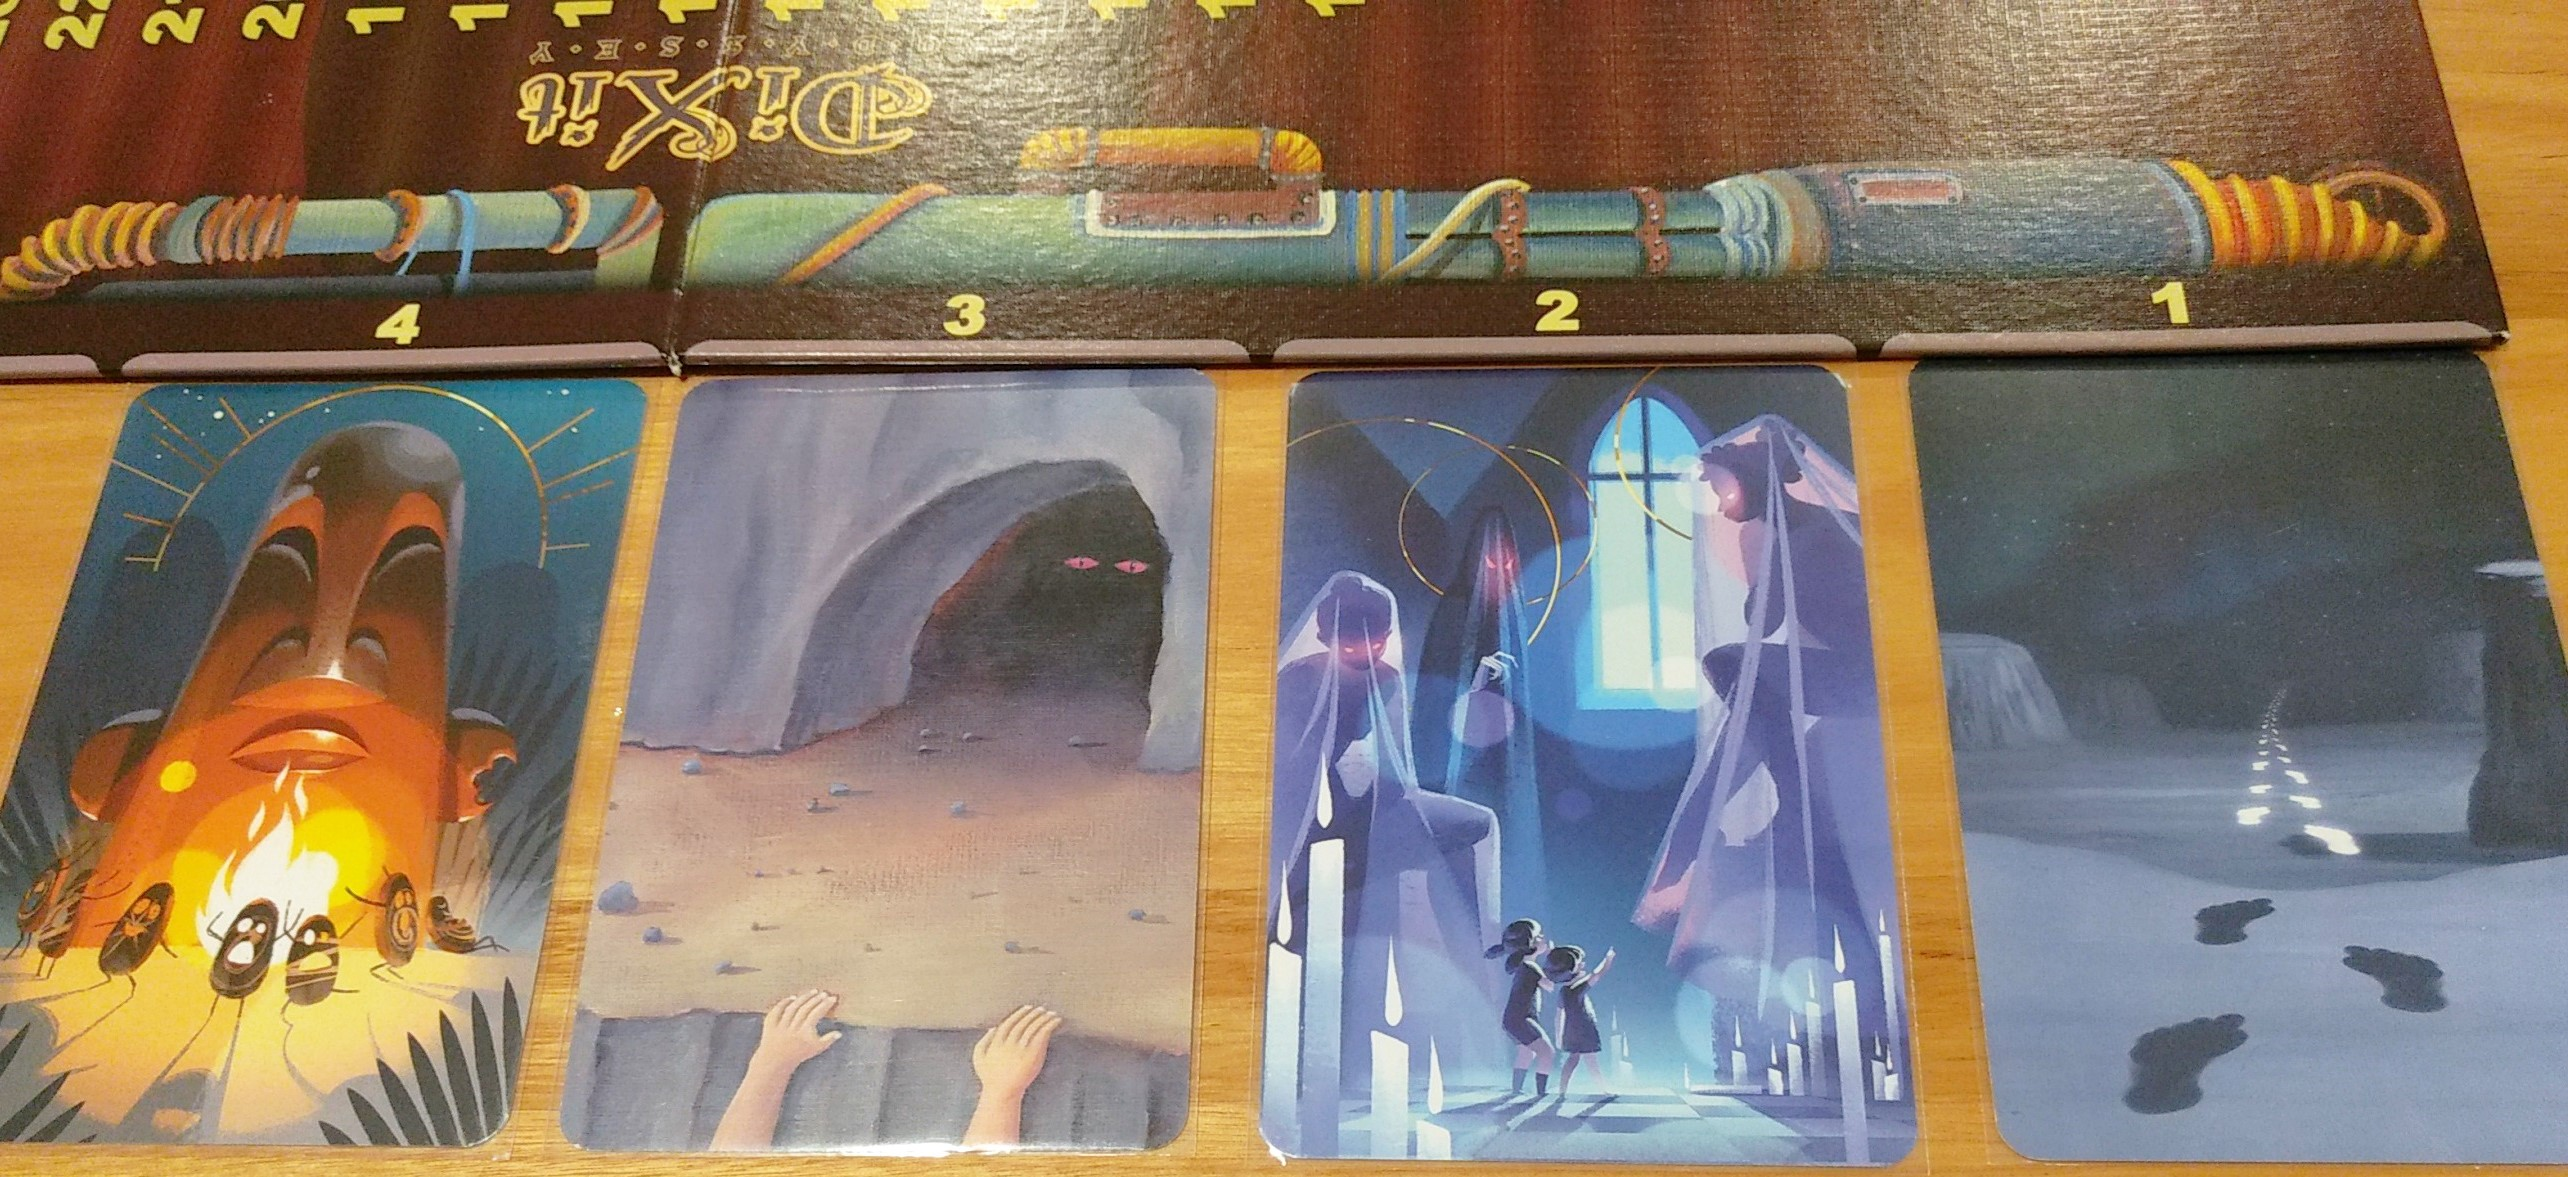 Roll-to-review-board-game-Dixit-what-dave-thinks-of-his-readers